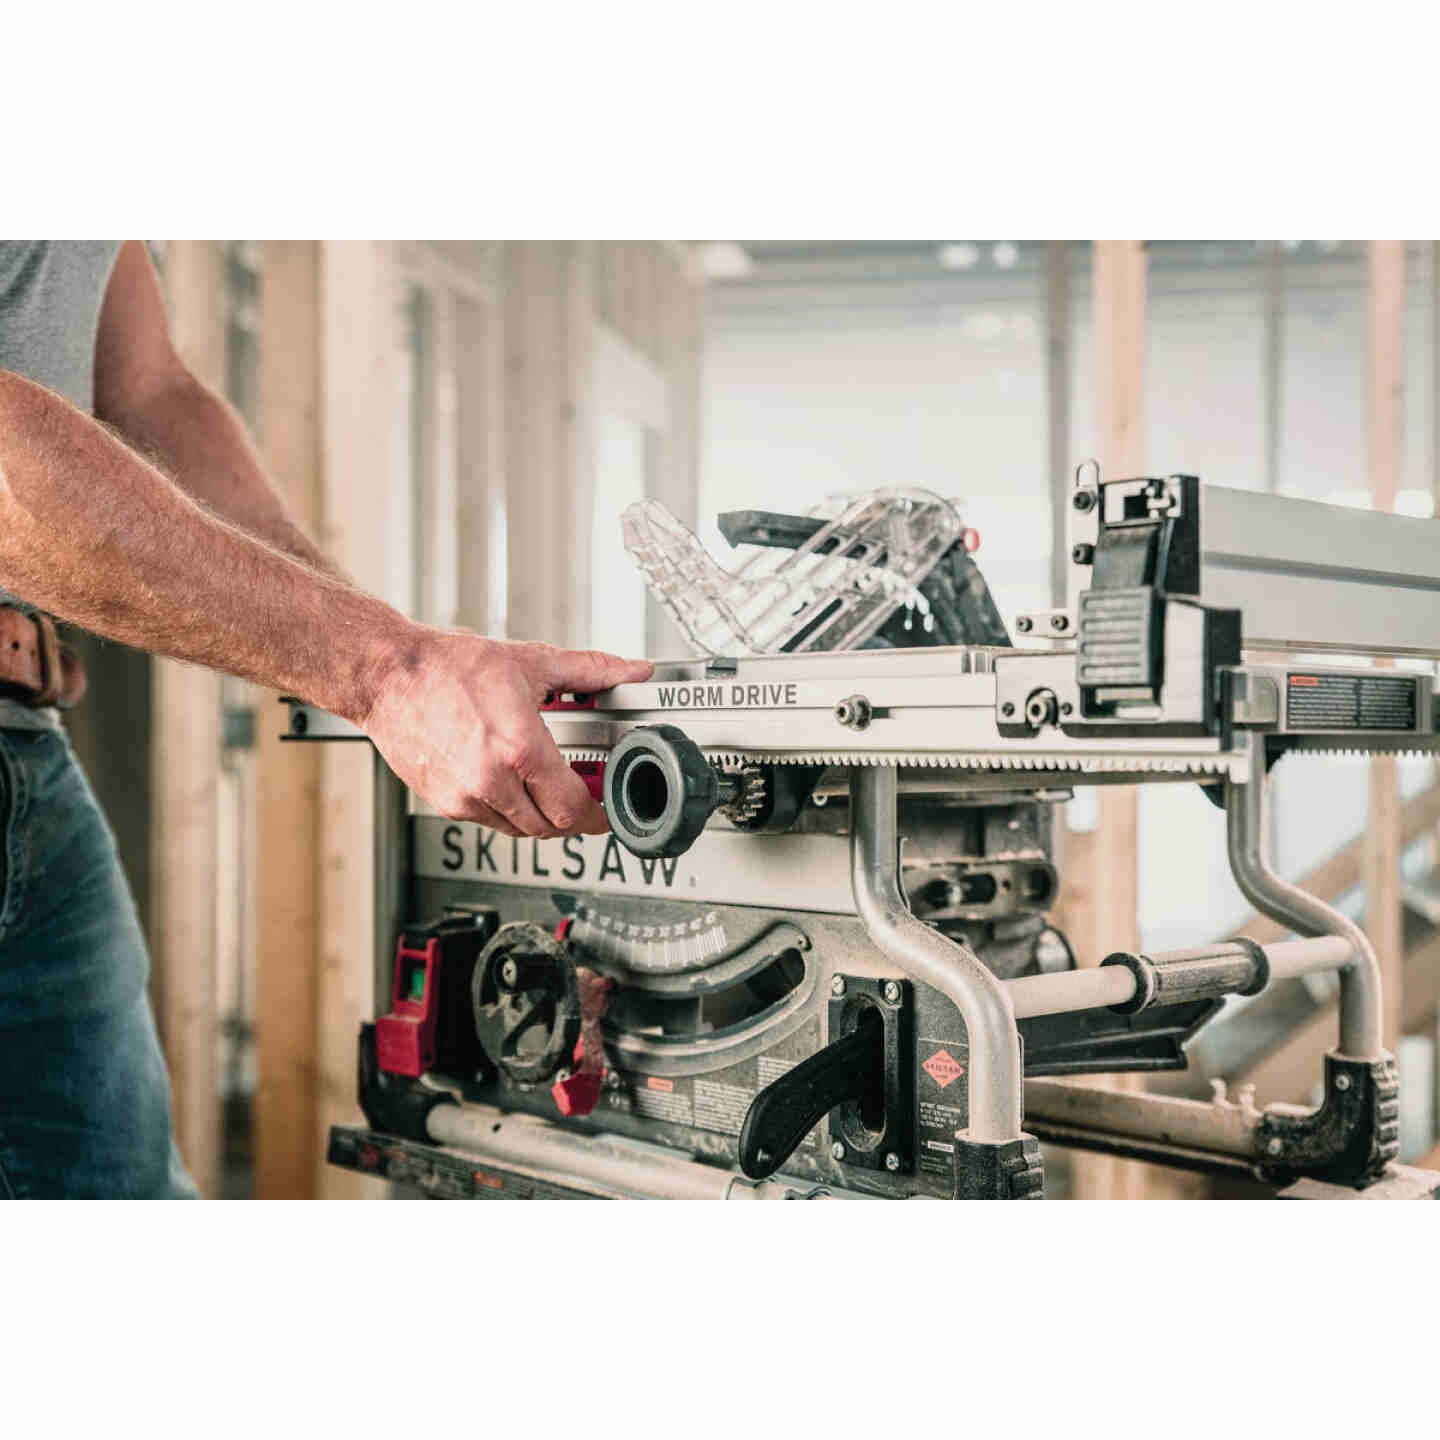 SKILSAW 15-Amp 8-1/4 In. Portable Worm Drive Table Saw Image 6